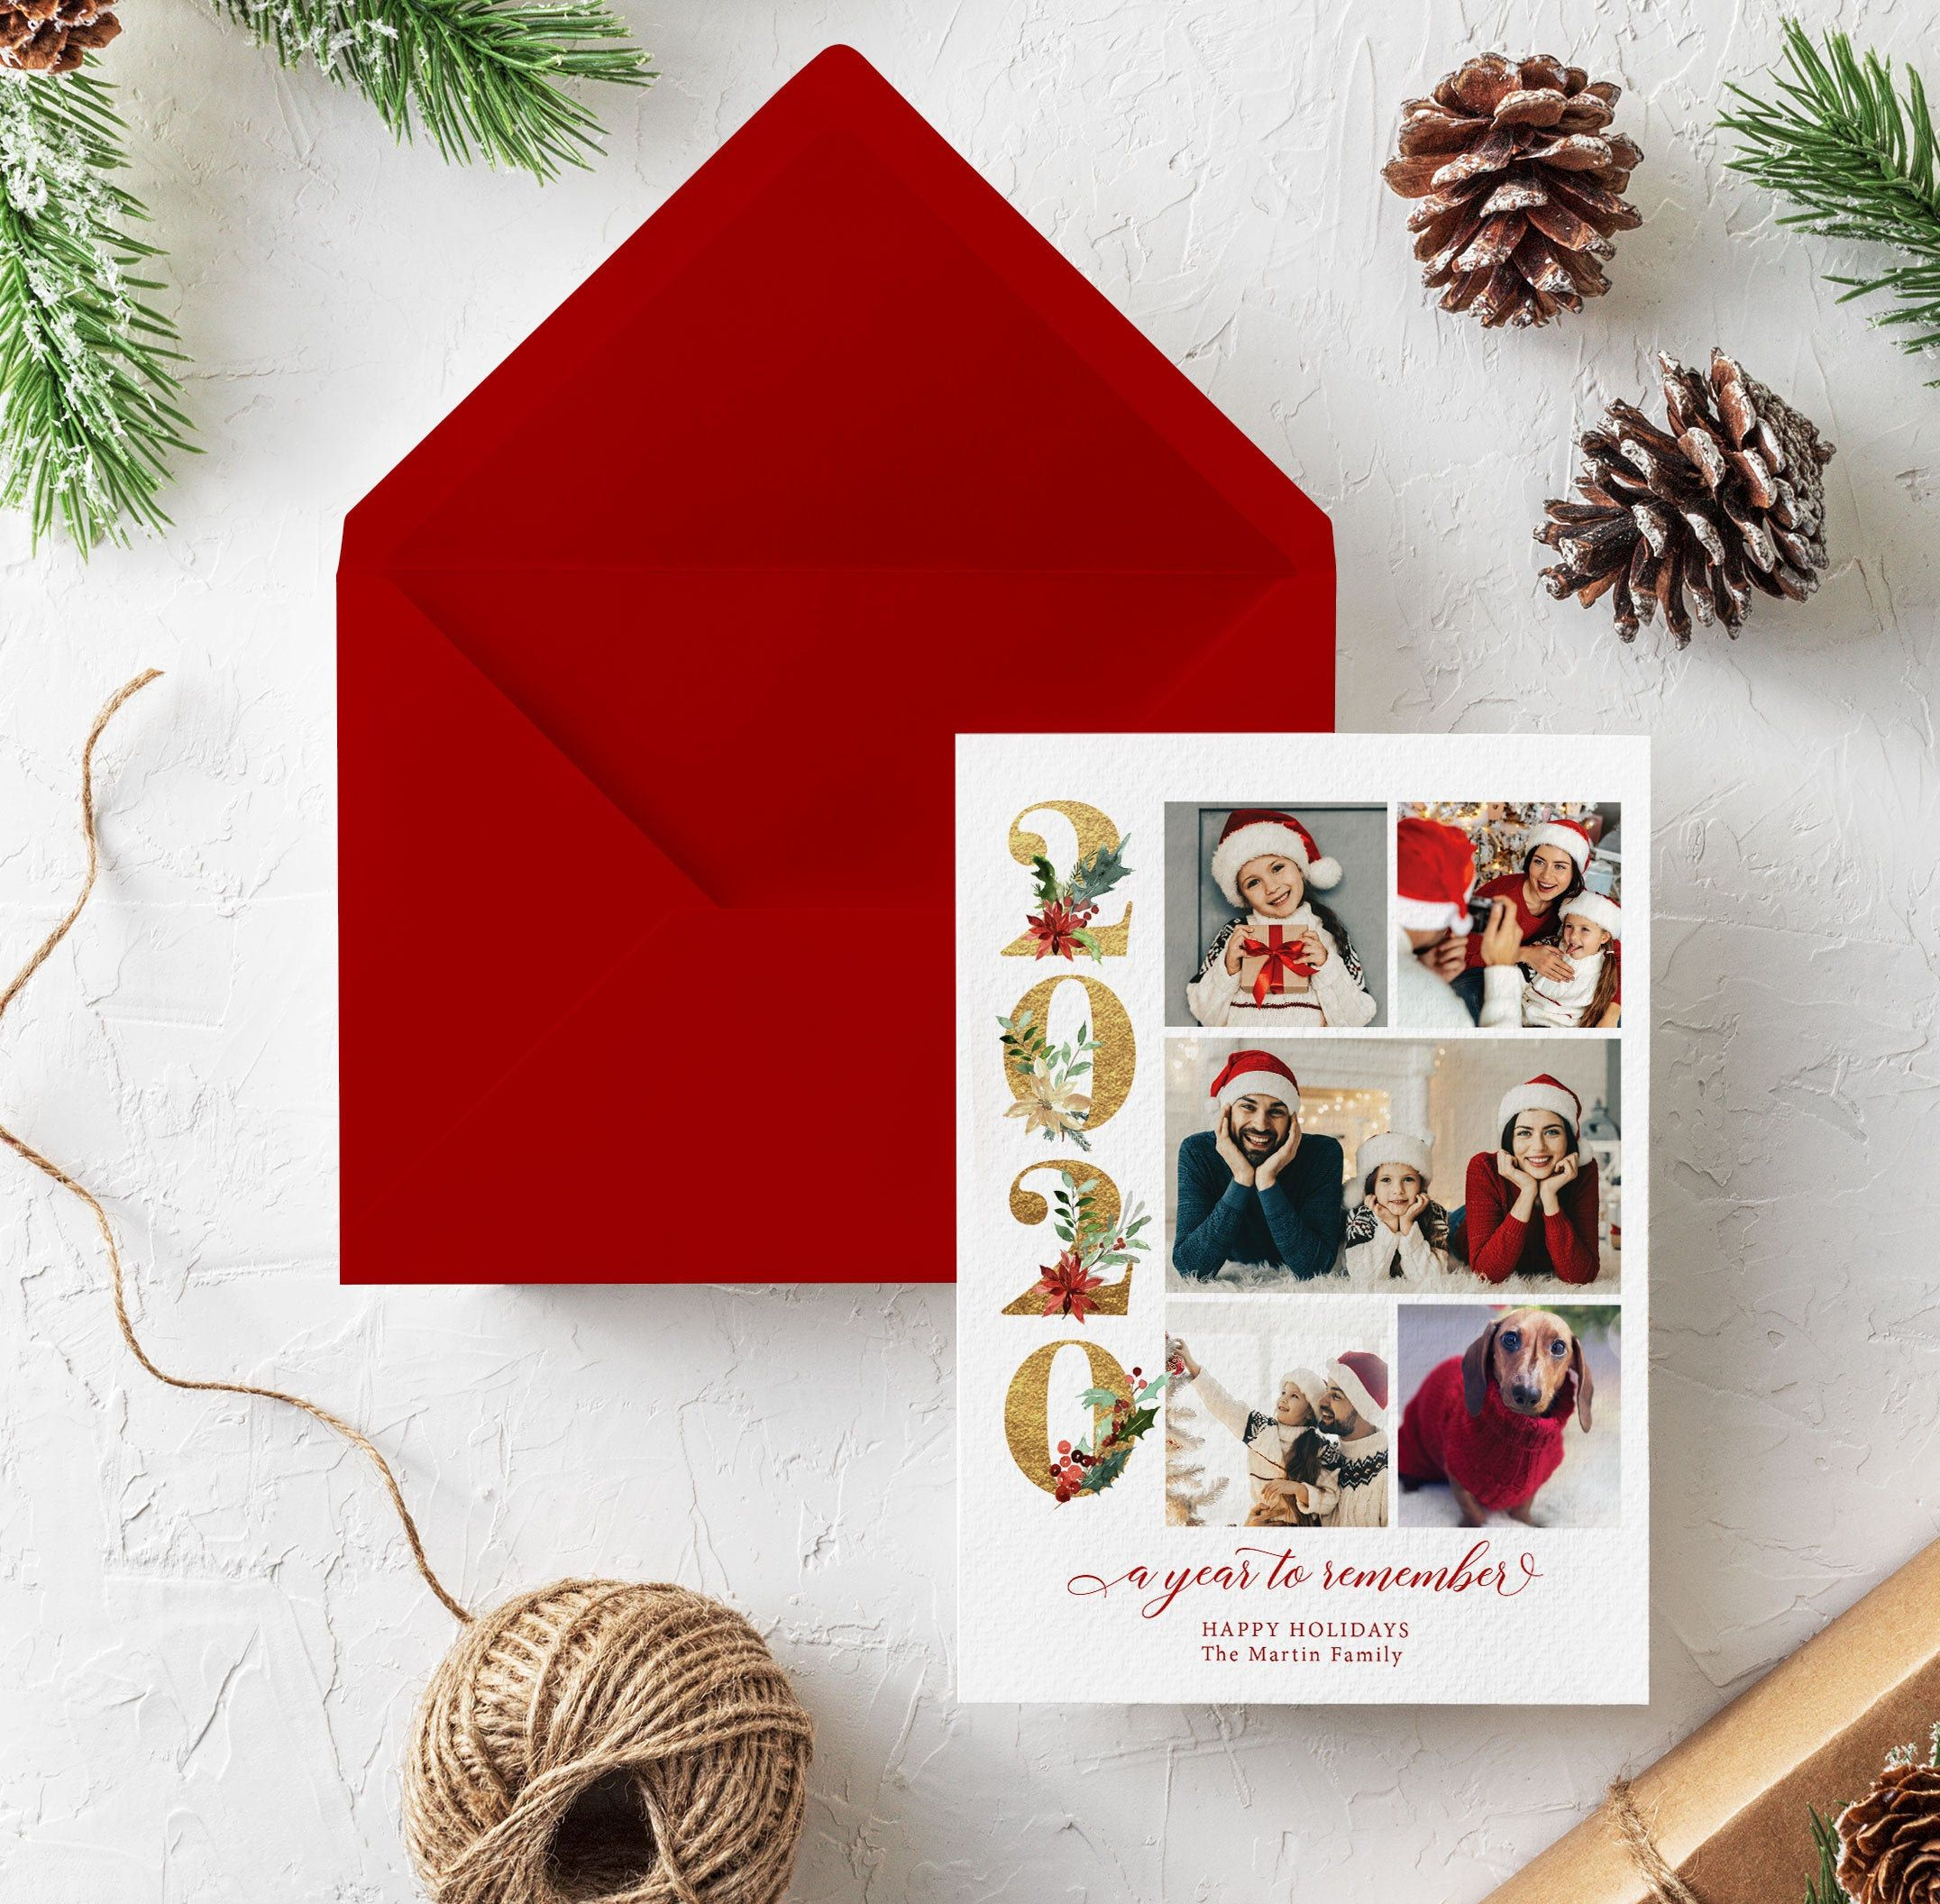 Christmas Card 2020 With Photo Template Printable Xmas Card Photo Holiday Card Editable Template New Years Card Hc2020 Christmas Cards Christmas Card Template Holiday Cards